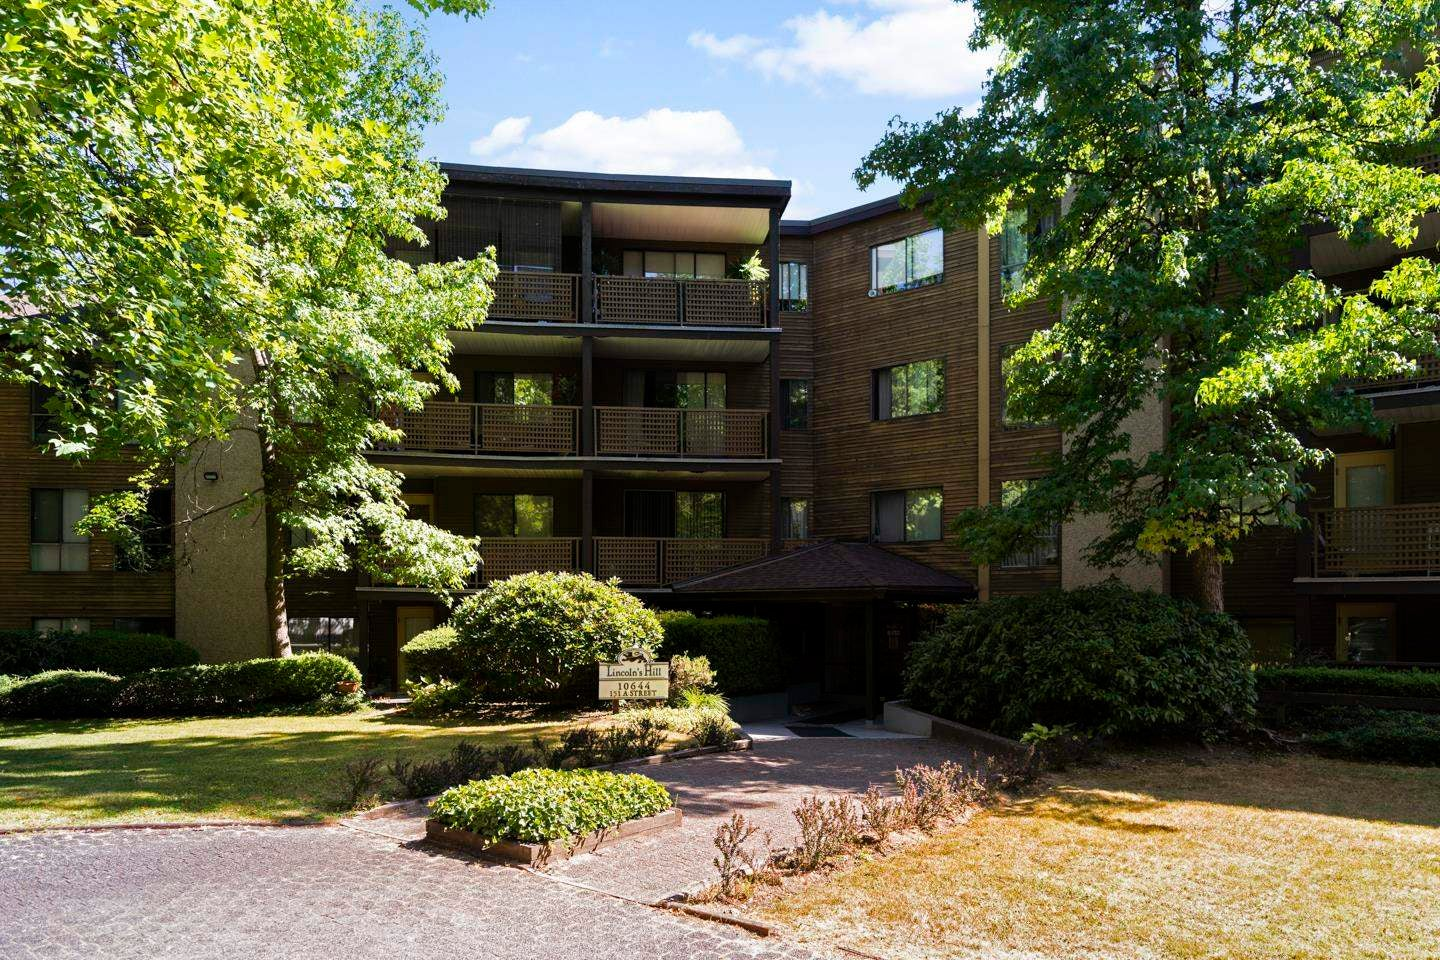 310 10644 151A STREET - Guildford Apartment/Condo for sale, 2 Bedrooms (R2606054) - #1